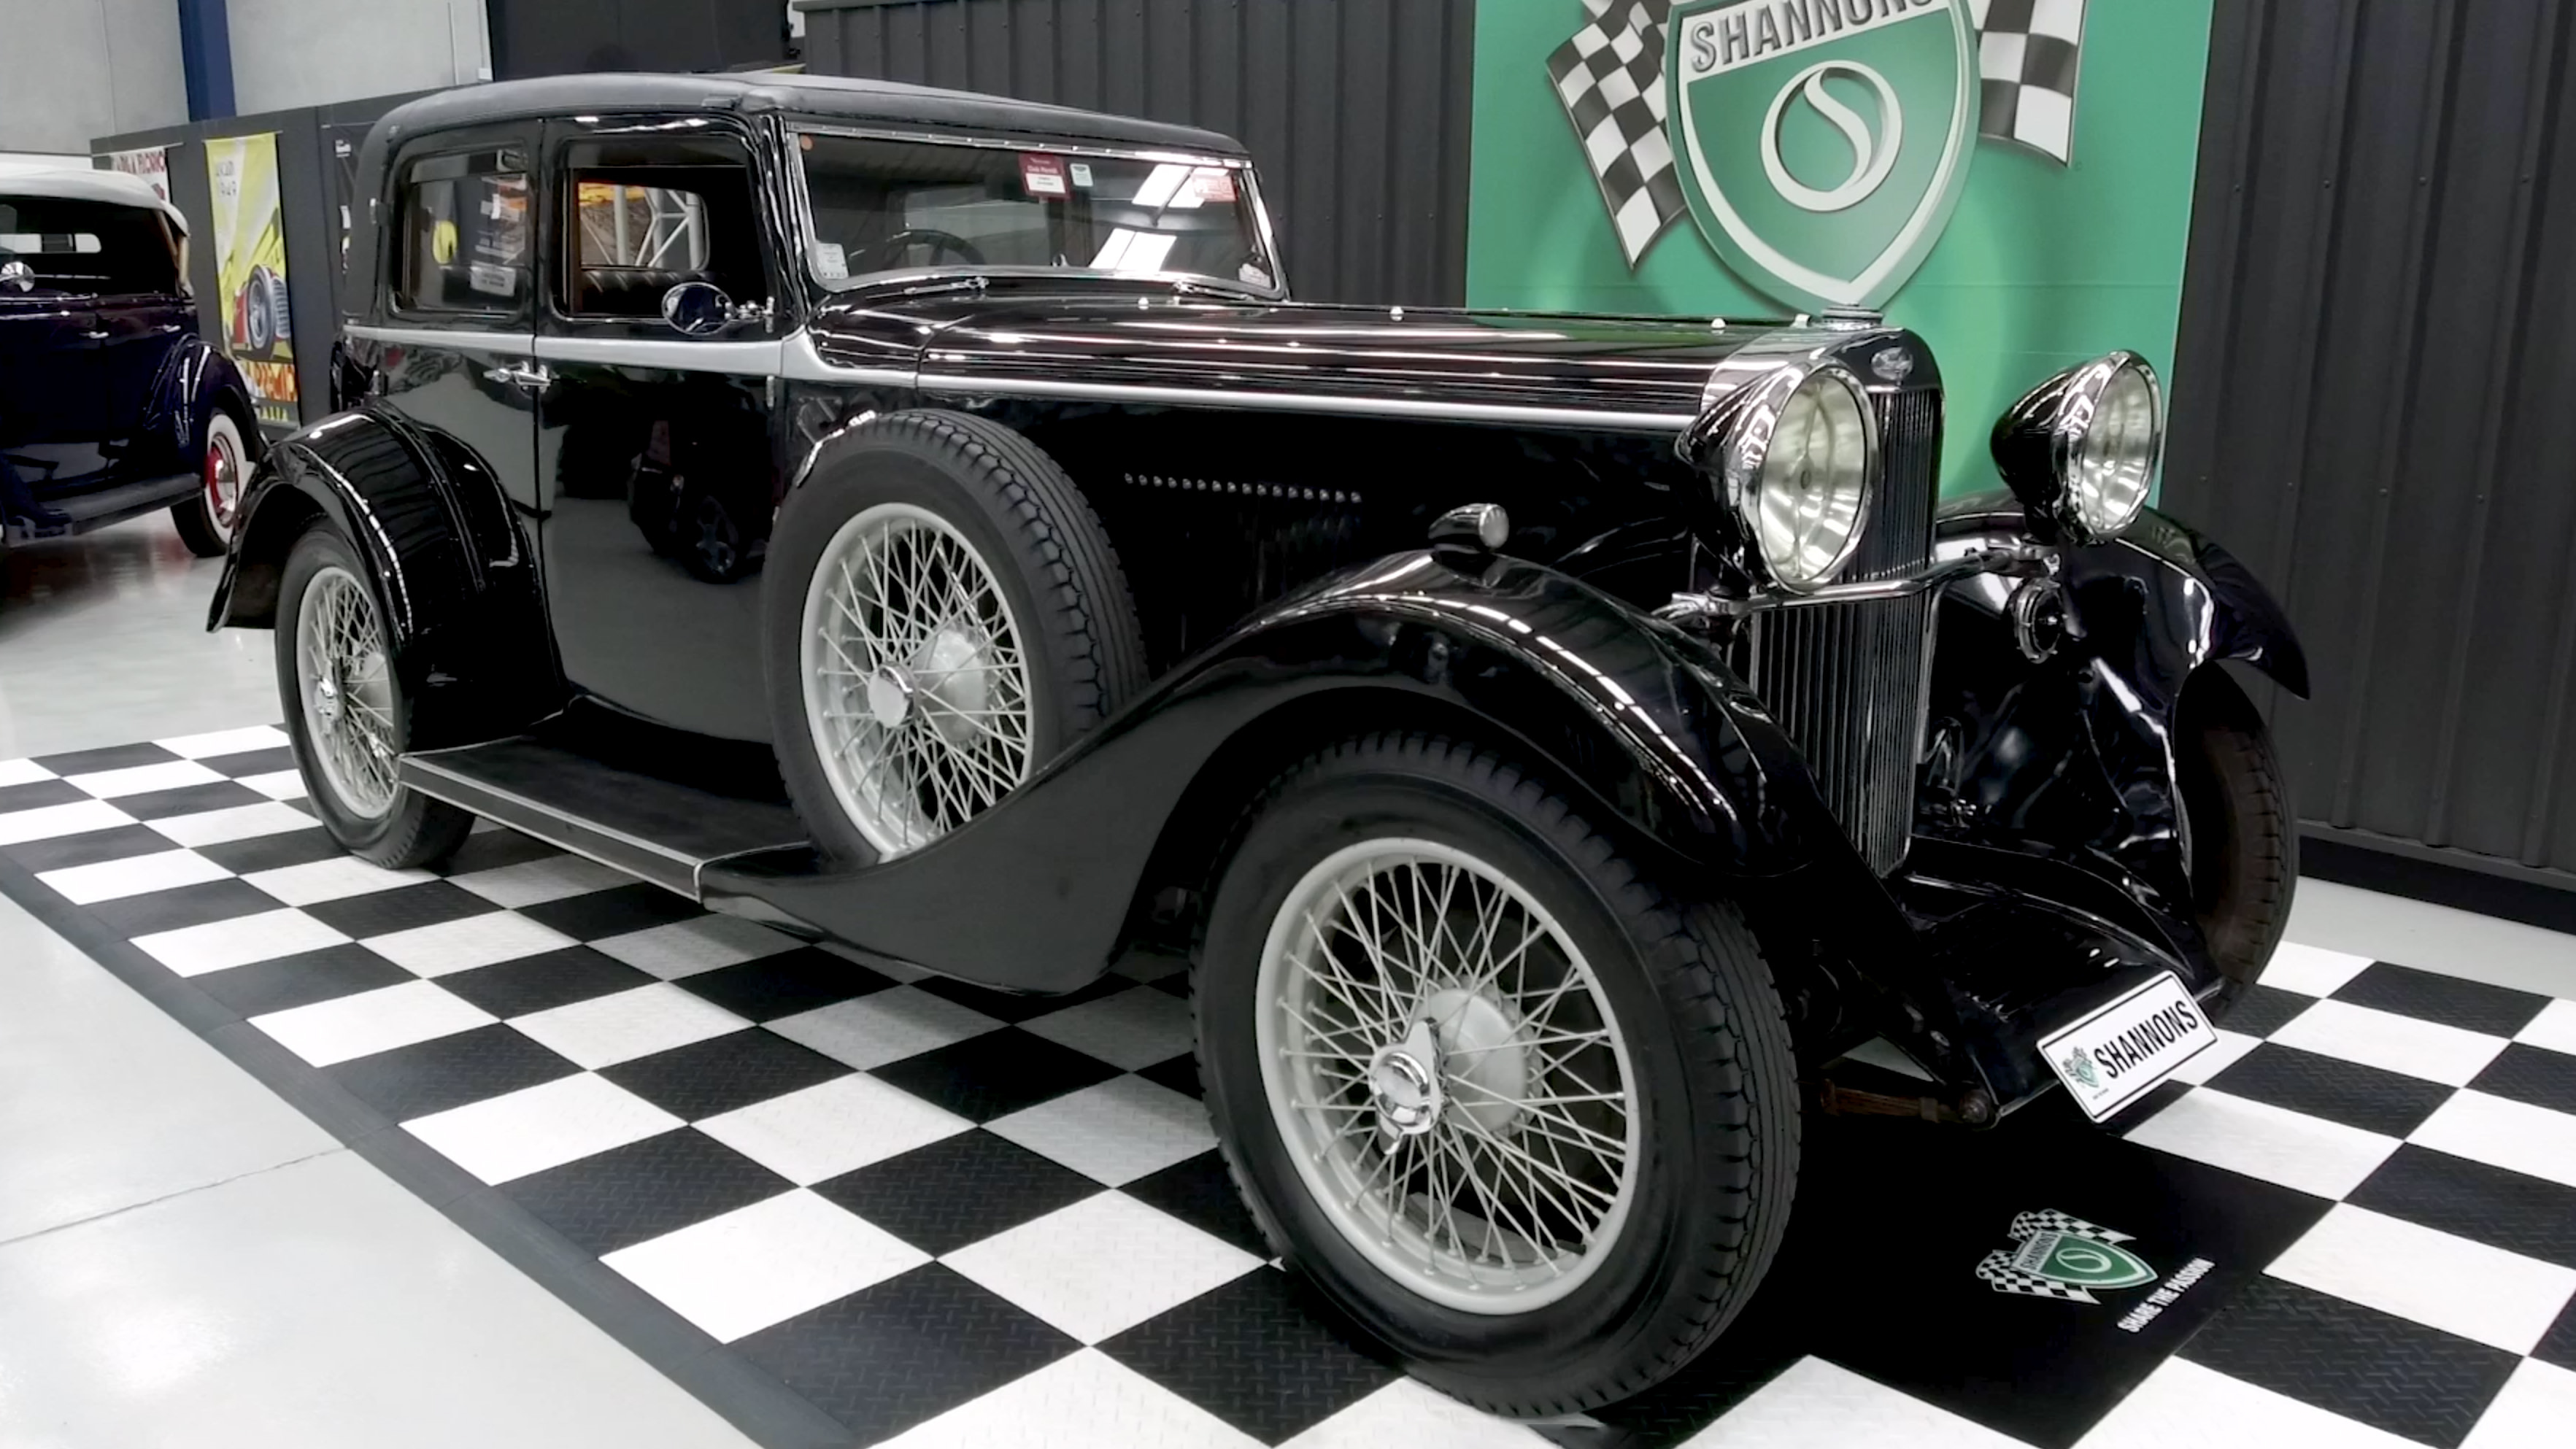 1933 Sunbeam Speed 20 4Dr 'Pillarless' Saloon - 2020 Shannons Spring Timed Online Auction